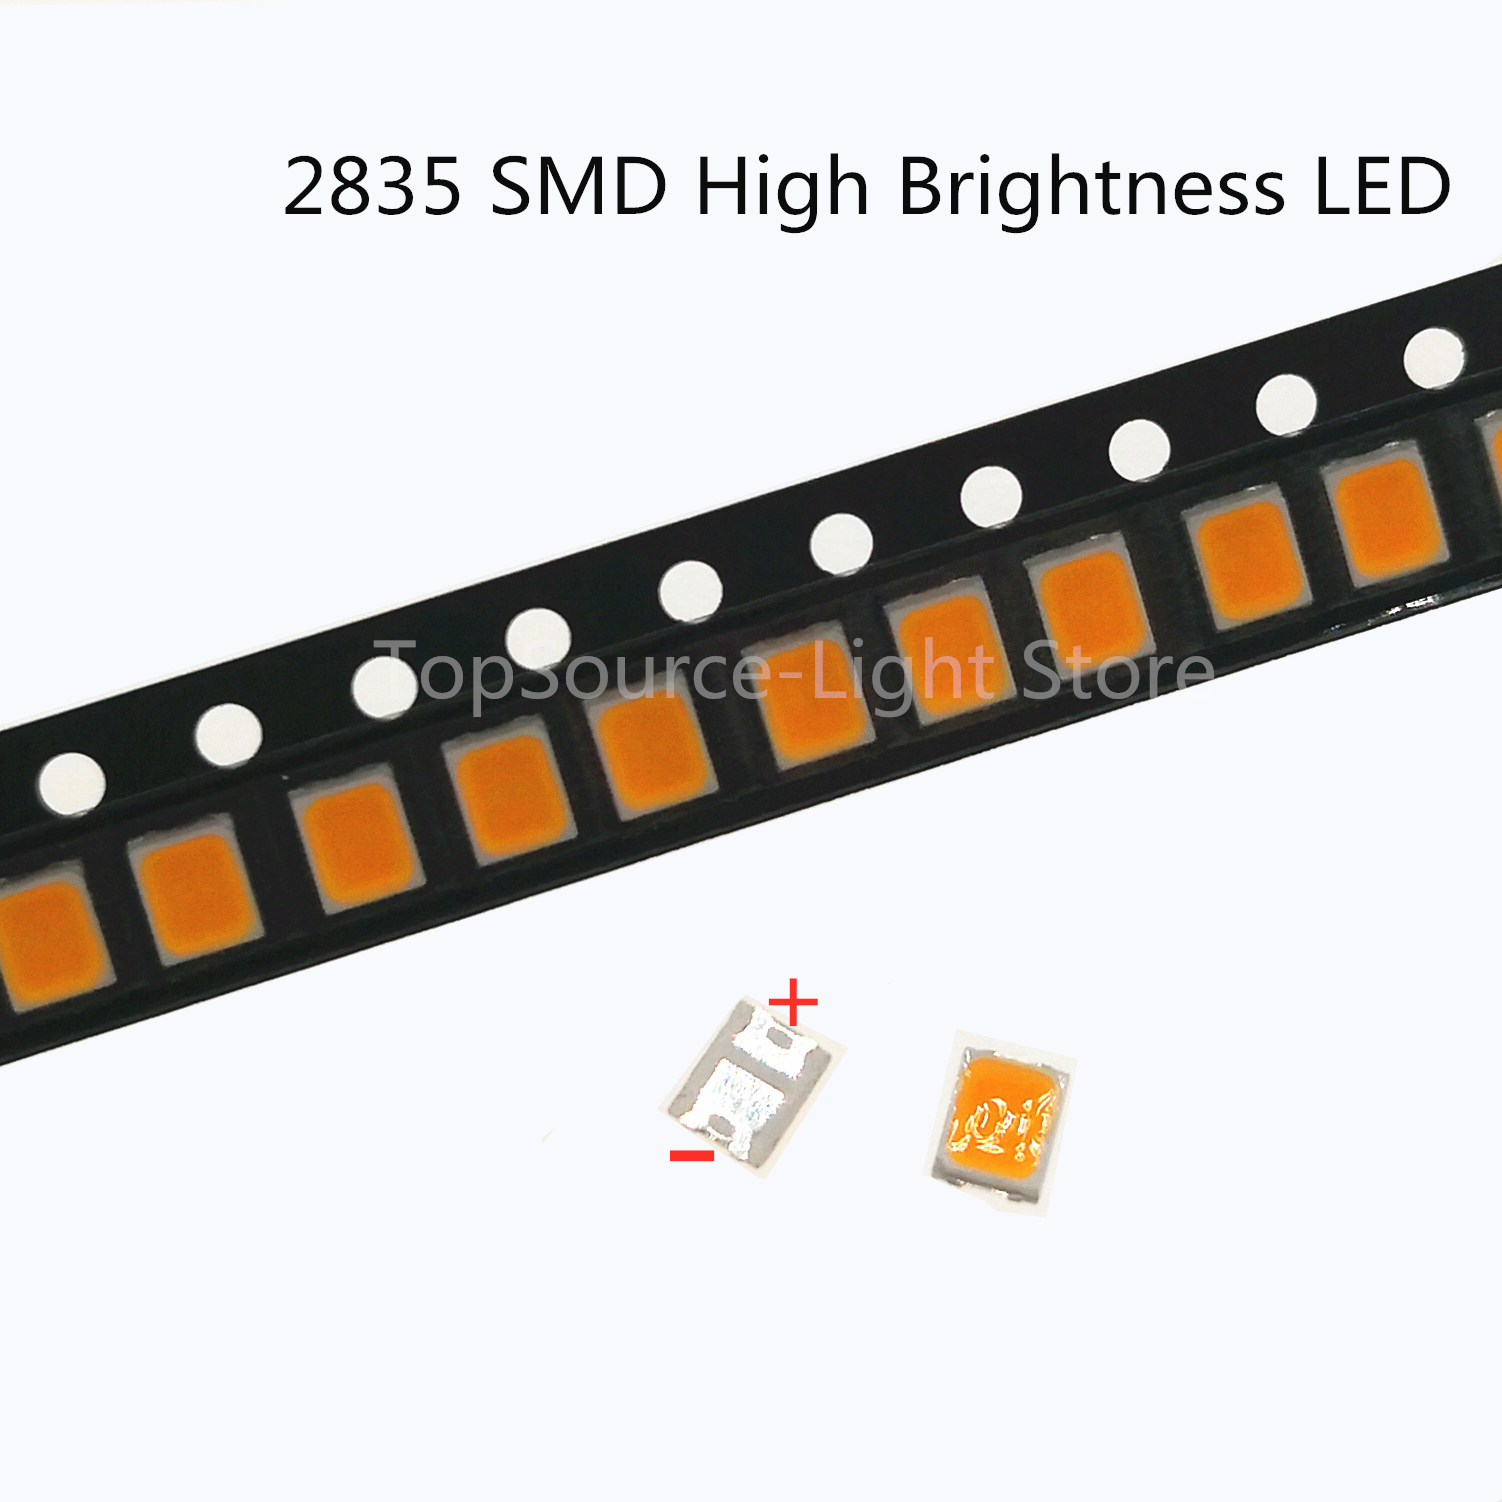 Original 100pcs High Brightness <font><b>2835</b></font> SMD <font><b>LED</b></font> Chip <font><b>1W</b></font> 18V 9V 6V <font><b>3V</b></font> White <font><b>LED</b></font> image